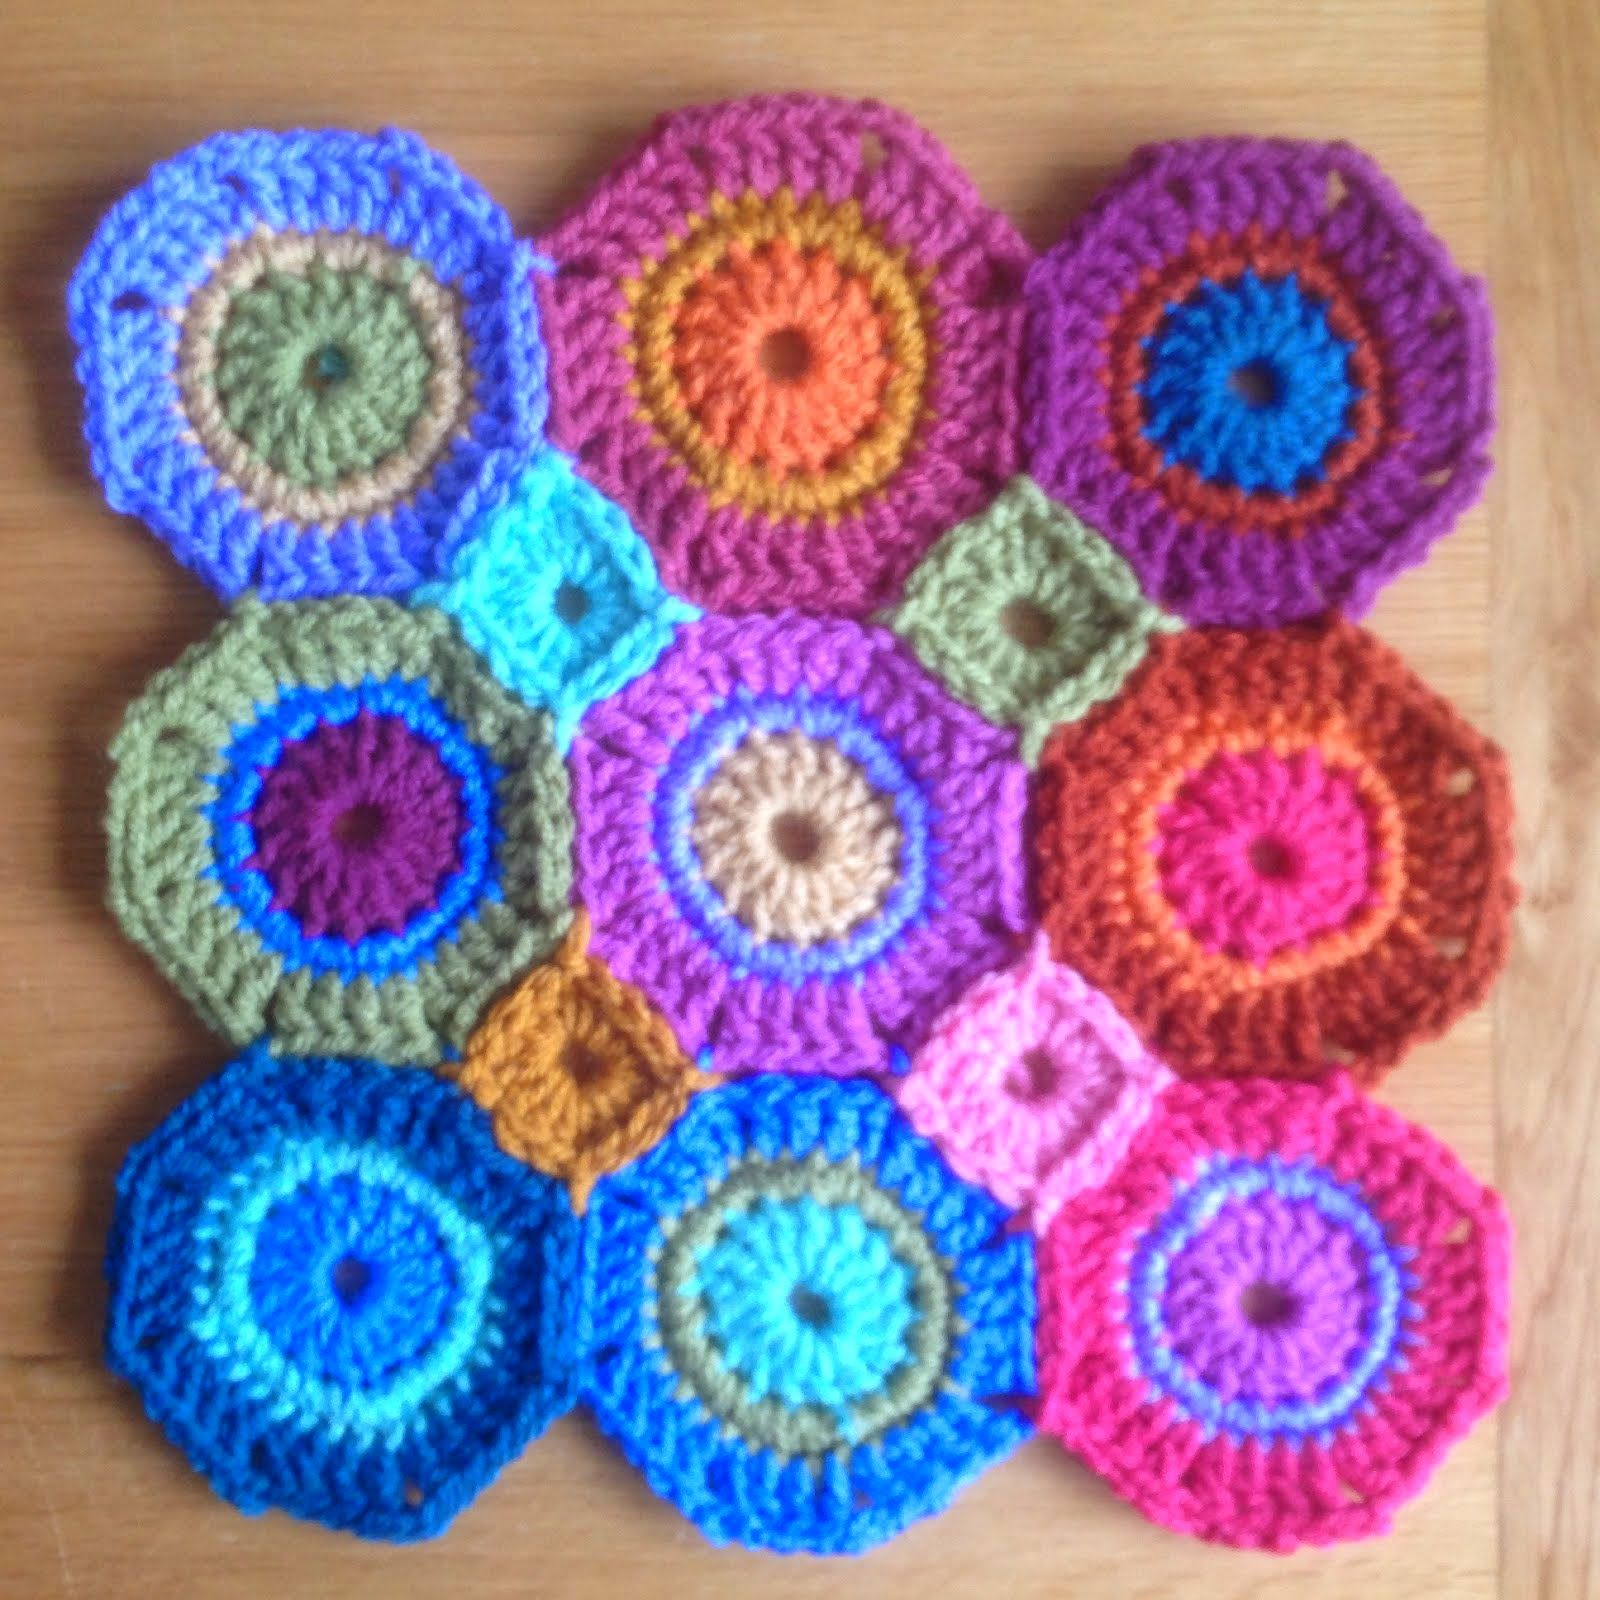 CHUNKY MONKEY cal | Crochet | Pinterest